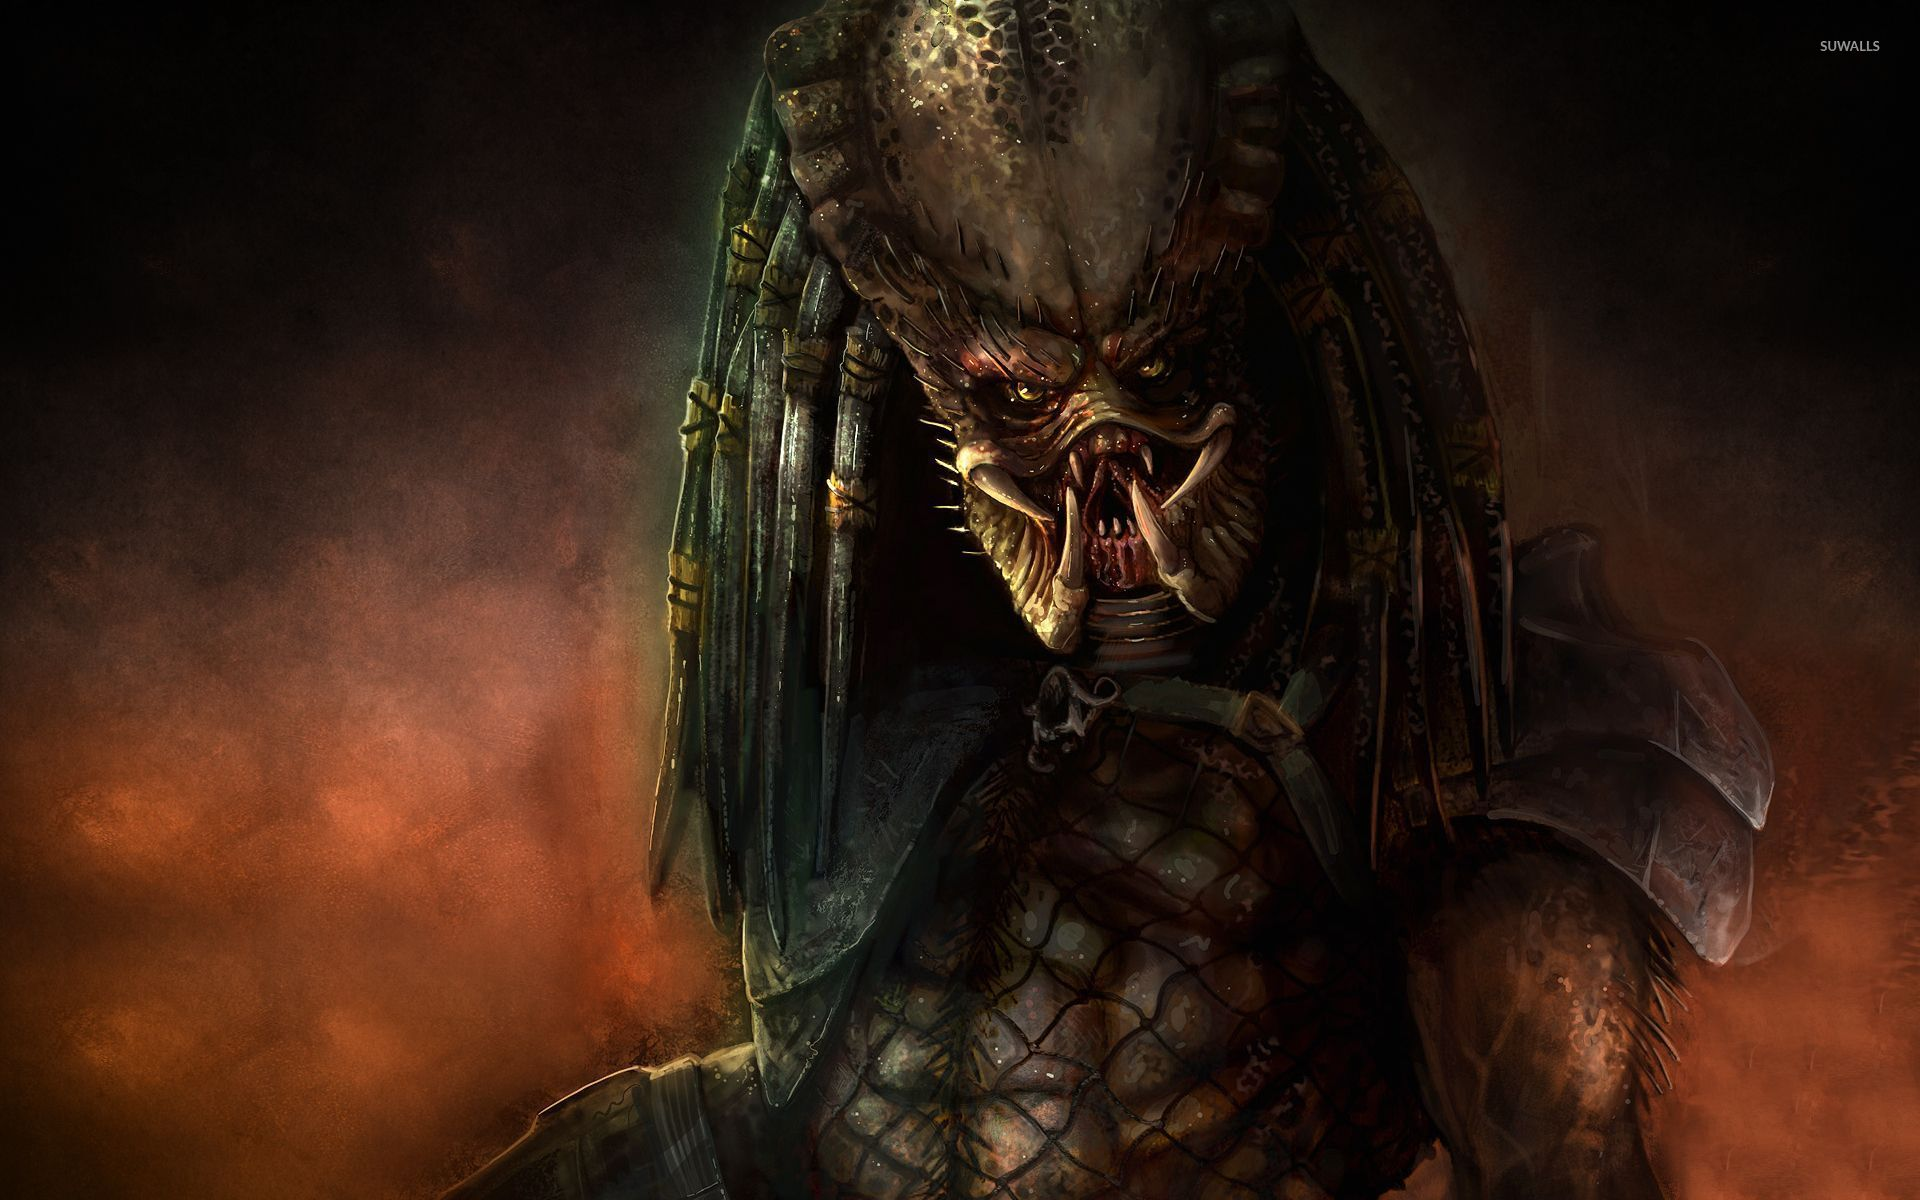 Scary Predator wallpaper   Movie wallpapers   52784 1920x1200